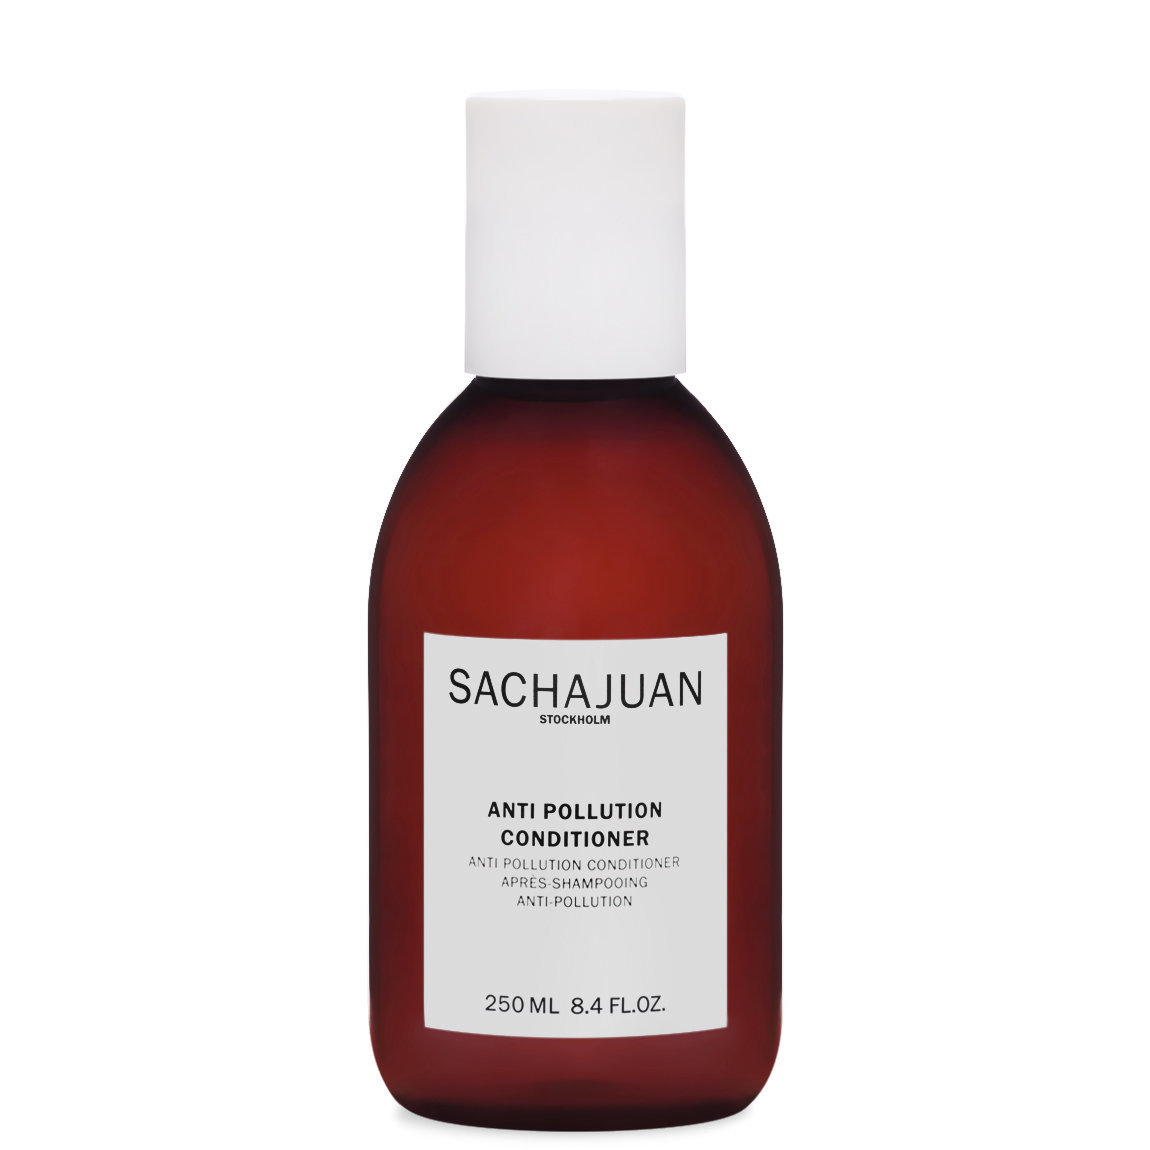 SACHAJUAN Anti-Pollution Conditioner